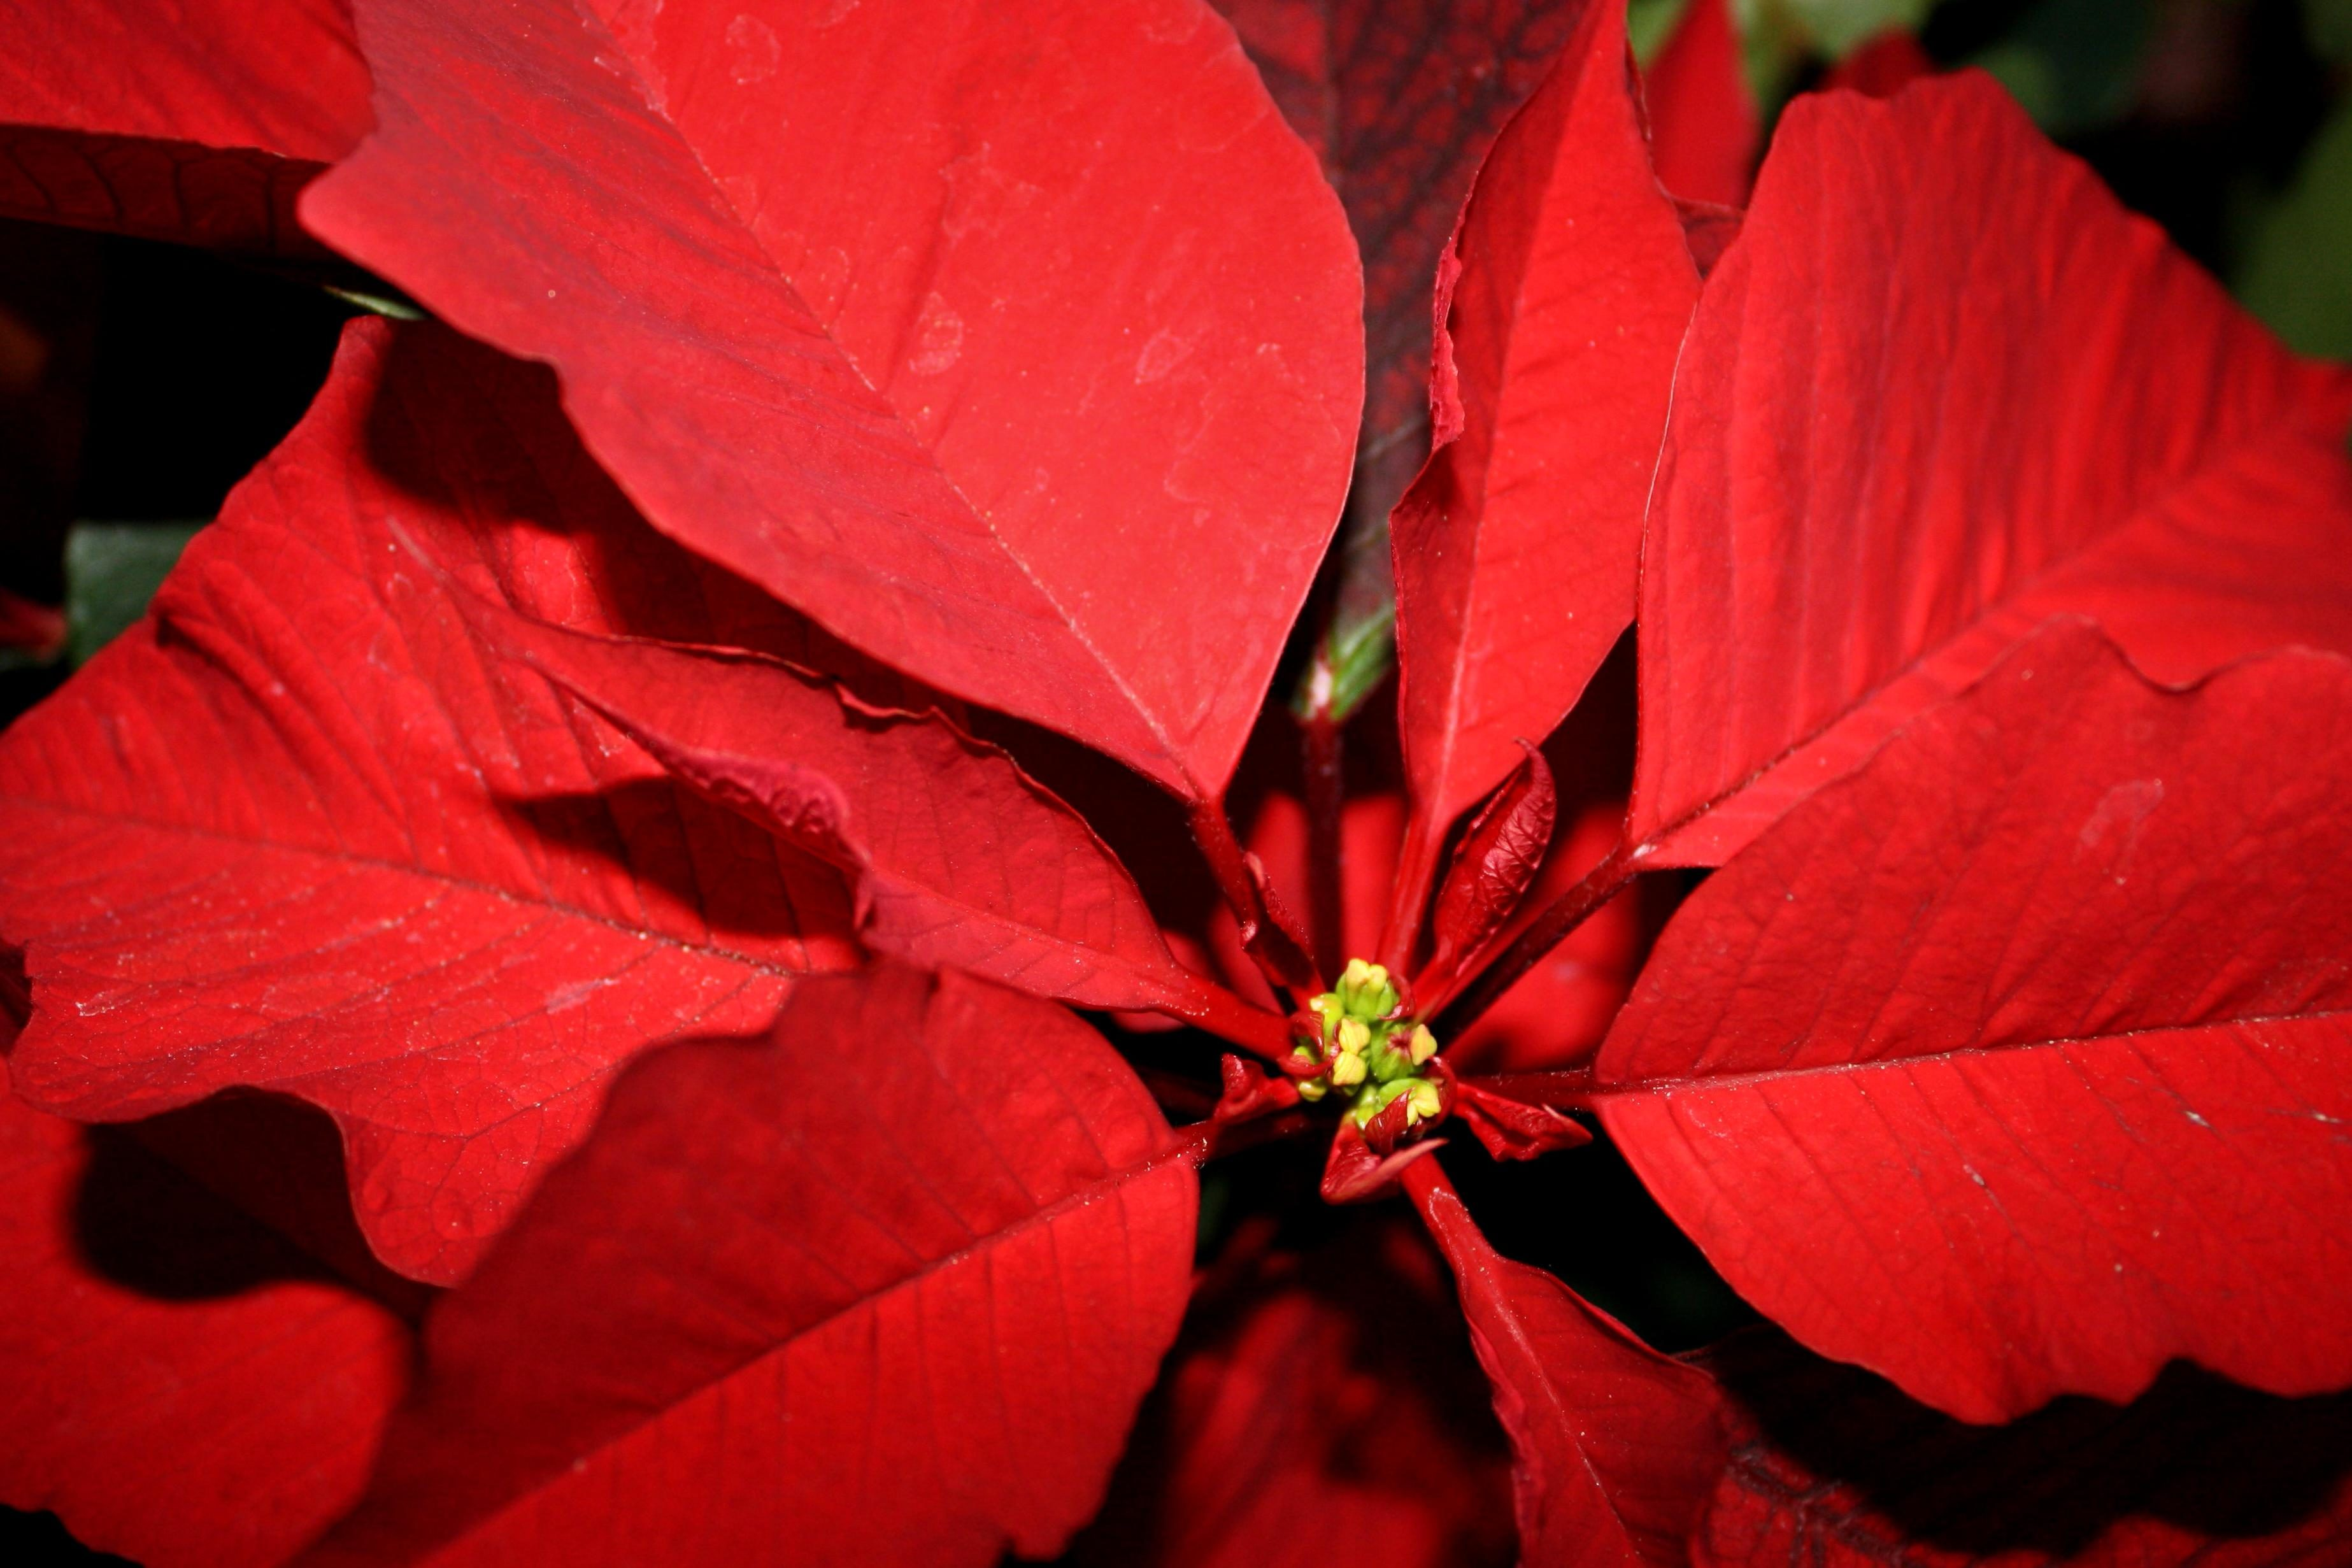 Free picture: poinsettia flower, close, red leaves, pistil, nectar ...